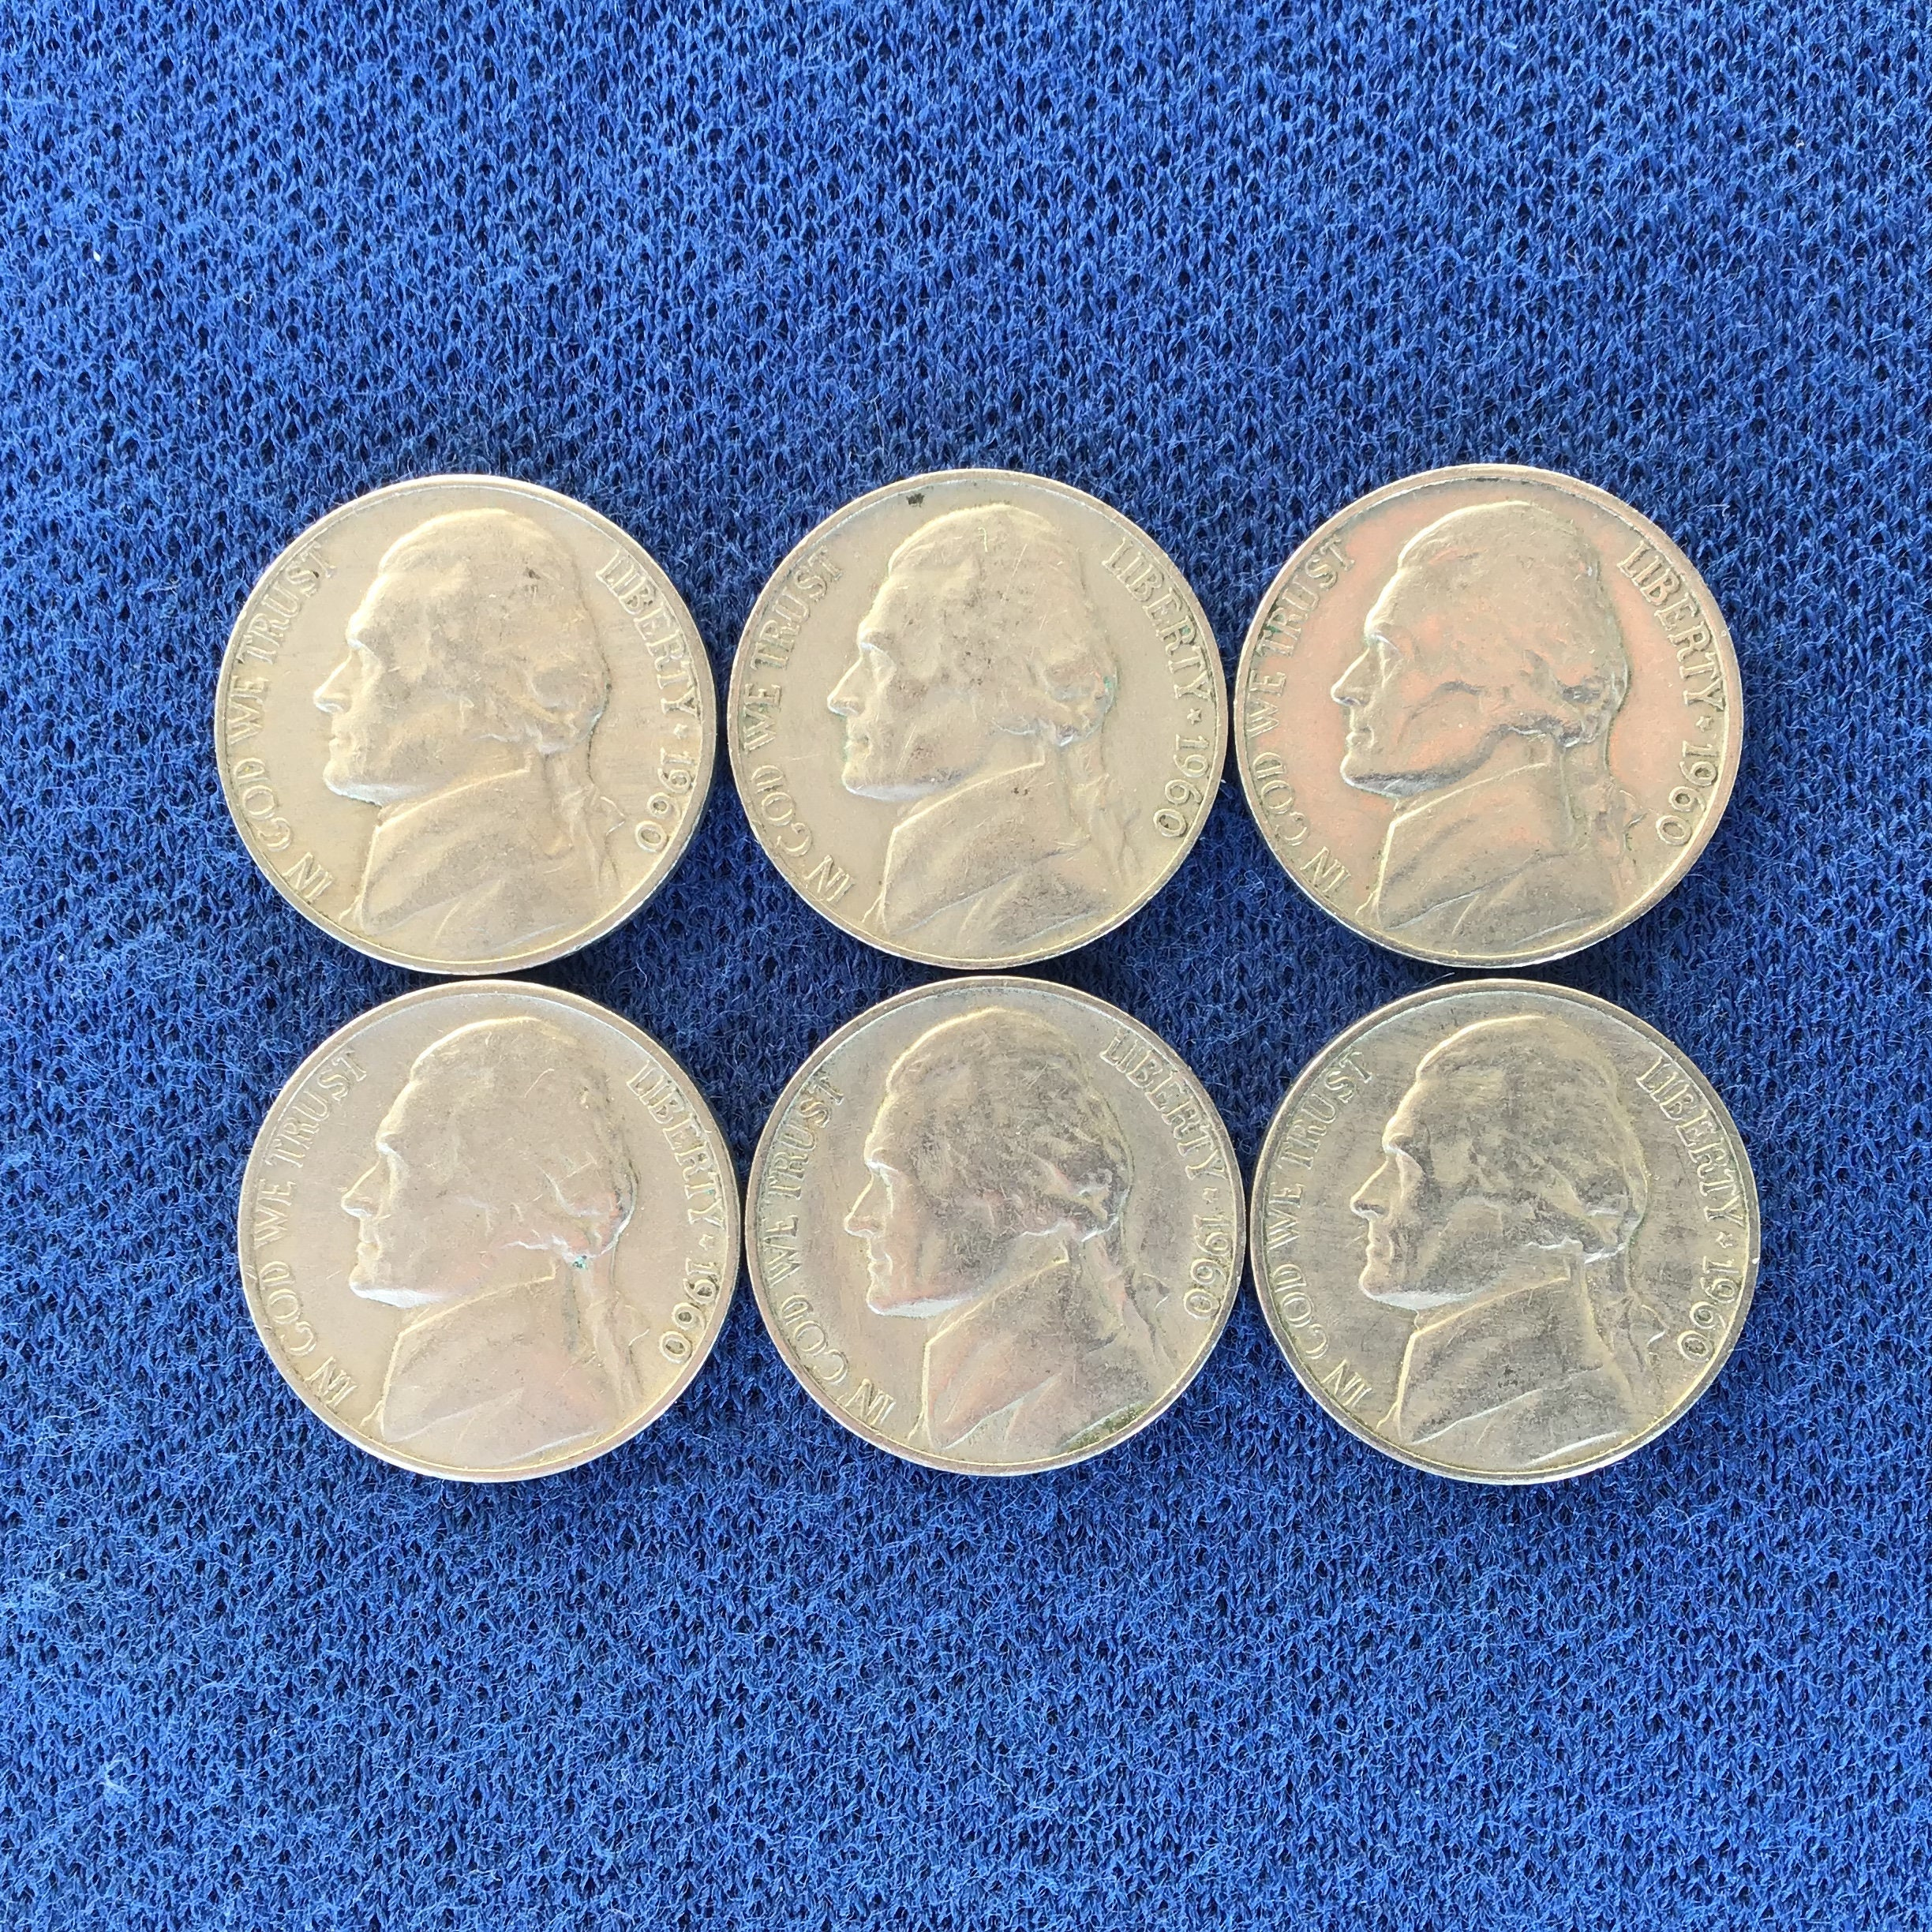 1960 D Vintage Jefferson Nickel, Old US Coins, Rare Nickels for Coin  Collecting